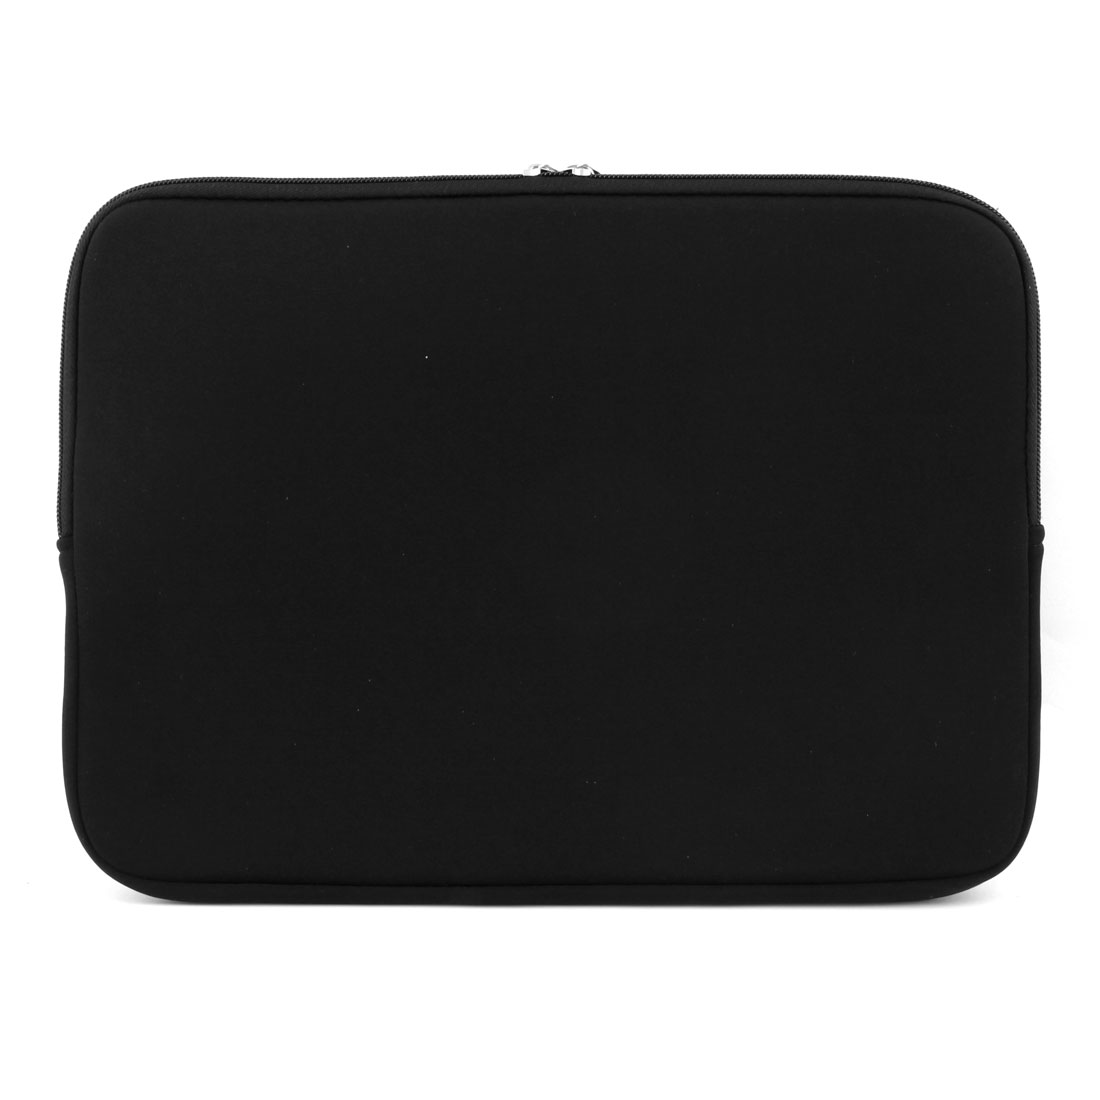 PC Computer Neoprene Dual Zipper Carry Bag Laptop Sleeve Cover Black for MacBook Pro Air 14 Inch